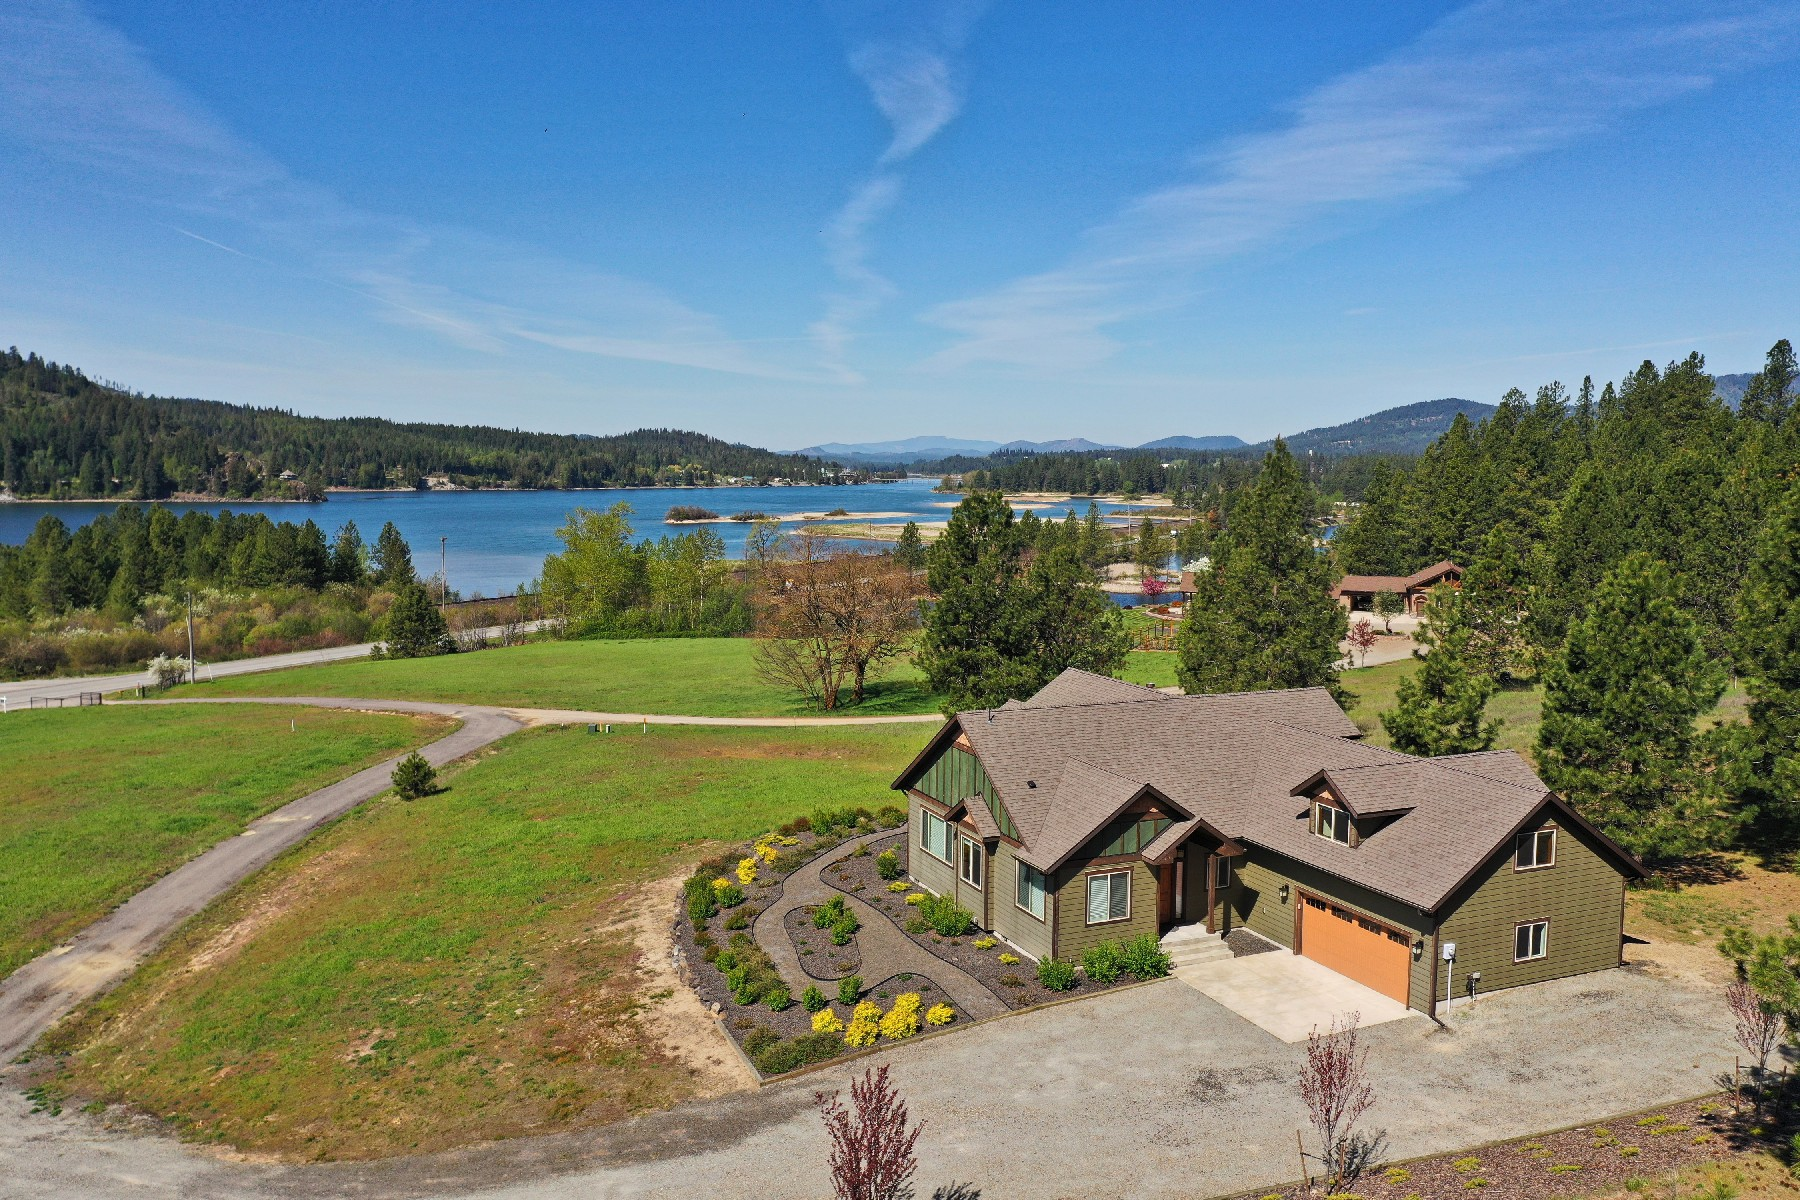 Single Family Home for Active at Beautiful home with million dollar views of the Pend Oreille River 110 Keyser Priest River, Idaho 83856 United States